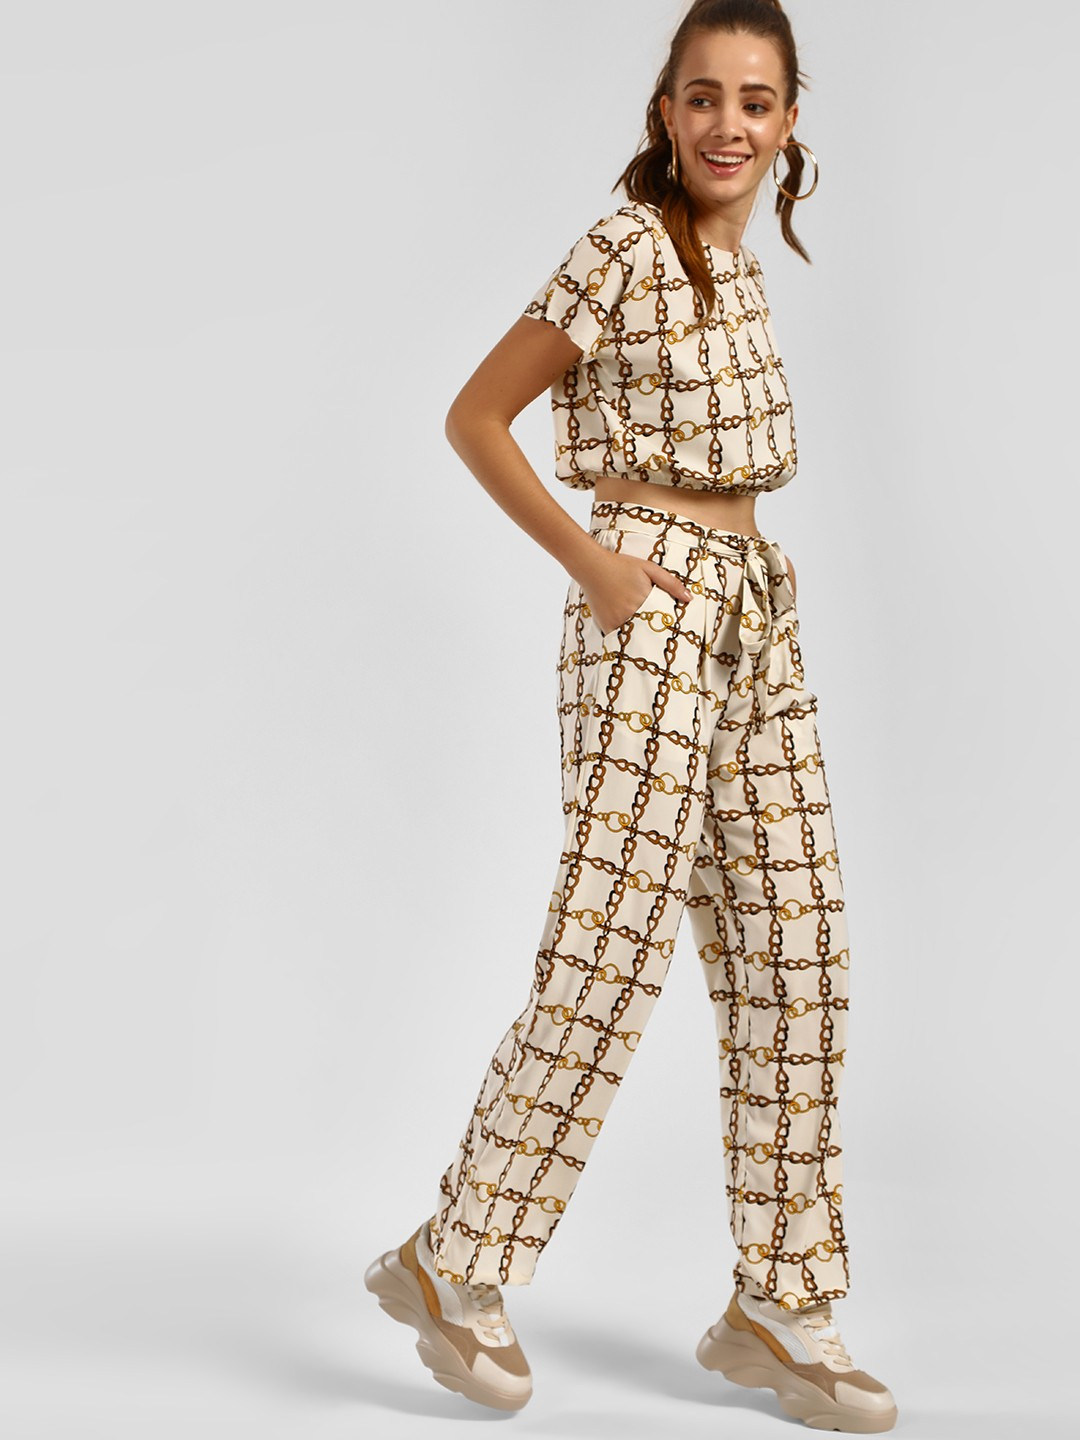 The Gud Look Print Chain Print Tie-Up Trousers 1